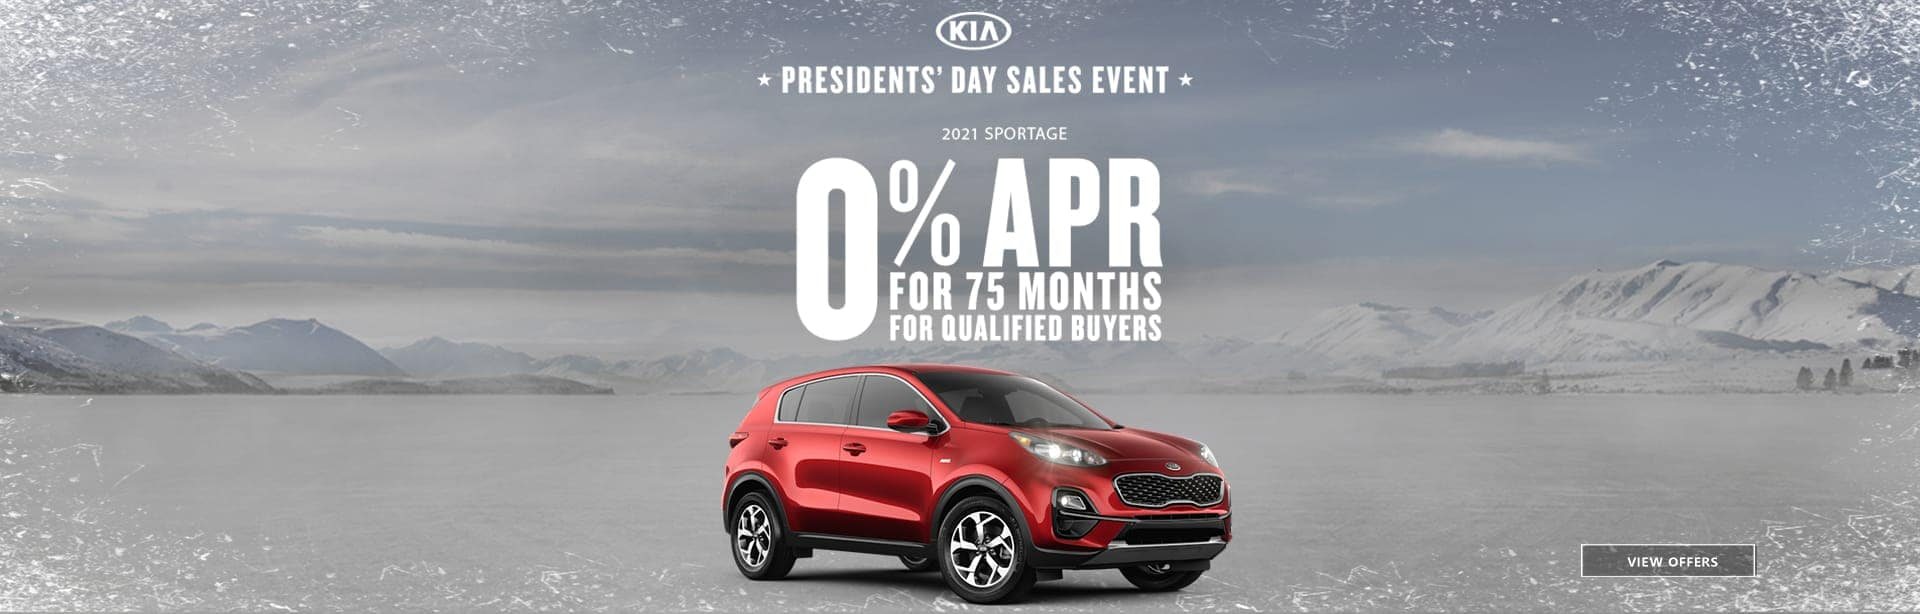 Sportage_1920x614_GM_Presidents-Day-Sales-Event